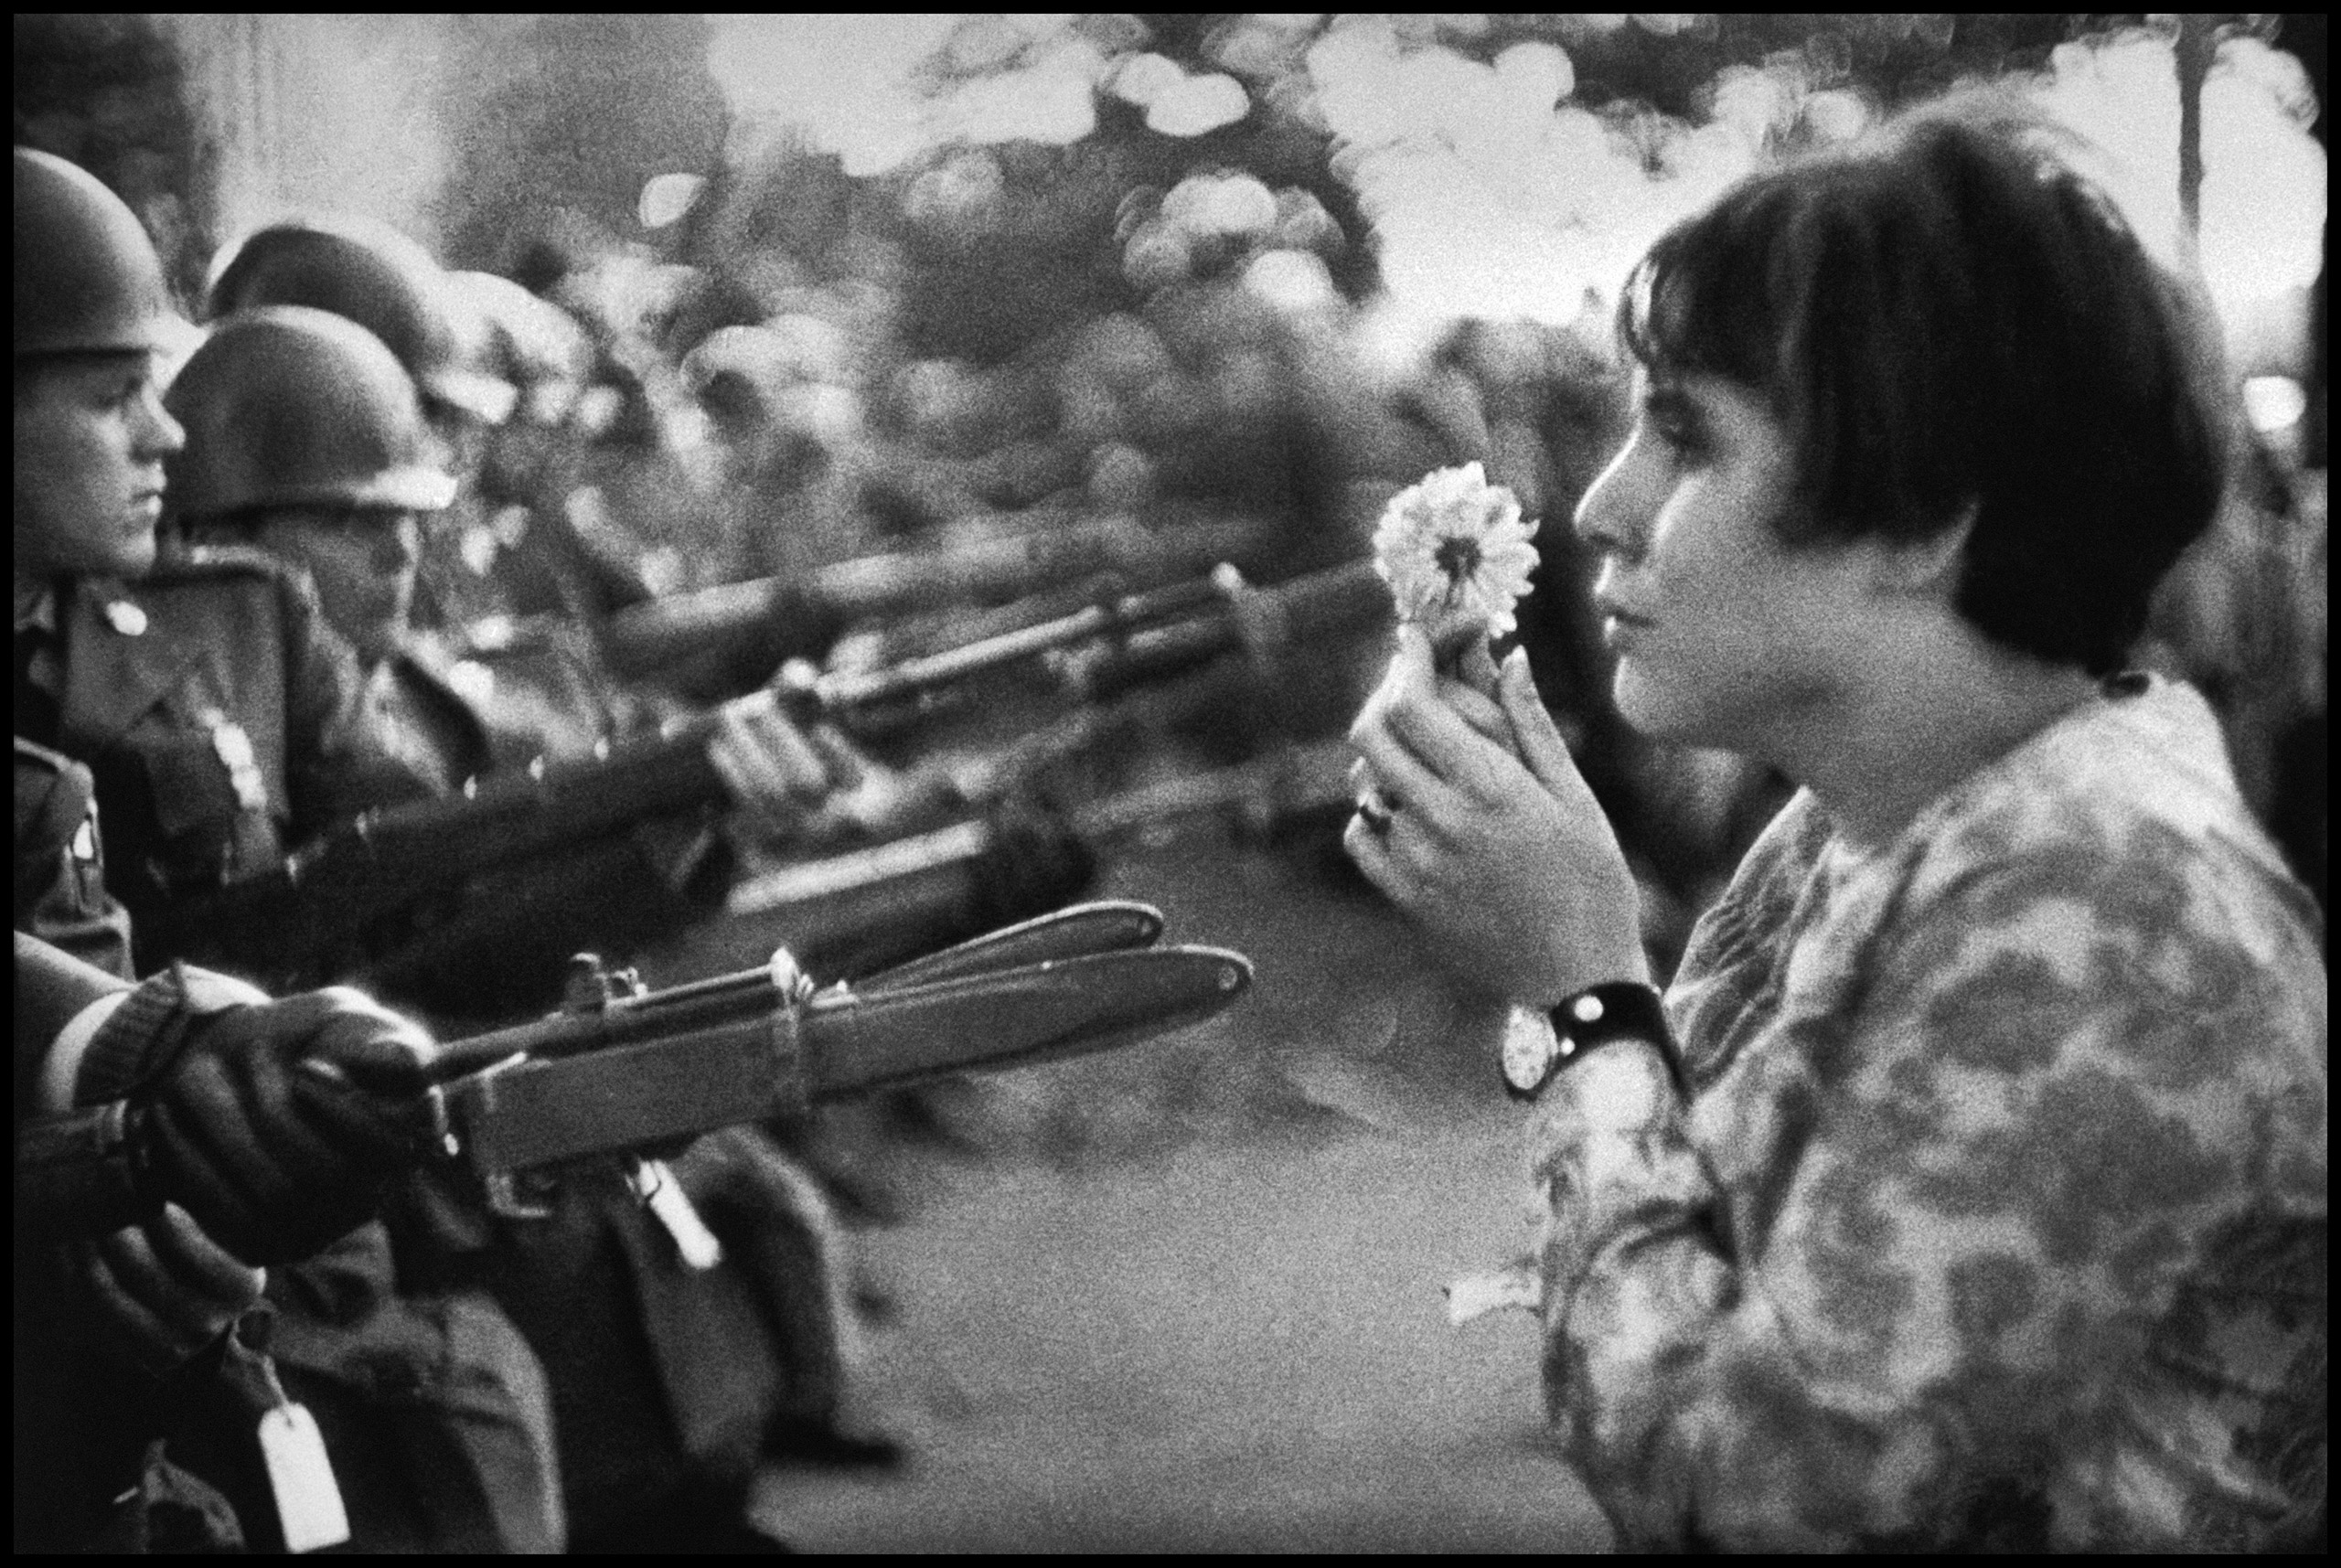 An American girl, Jan Rose Kasmir, confronts the American National Guard outside the Pentagon in Washington, D.C., during the 1967 anti-Vietnam march. This march helped to turn public opinion against the U.S. war in Vietnam.